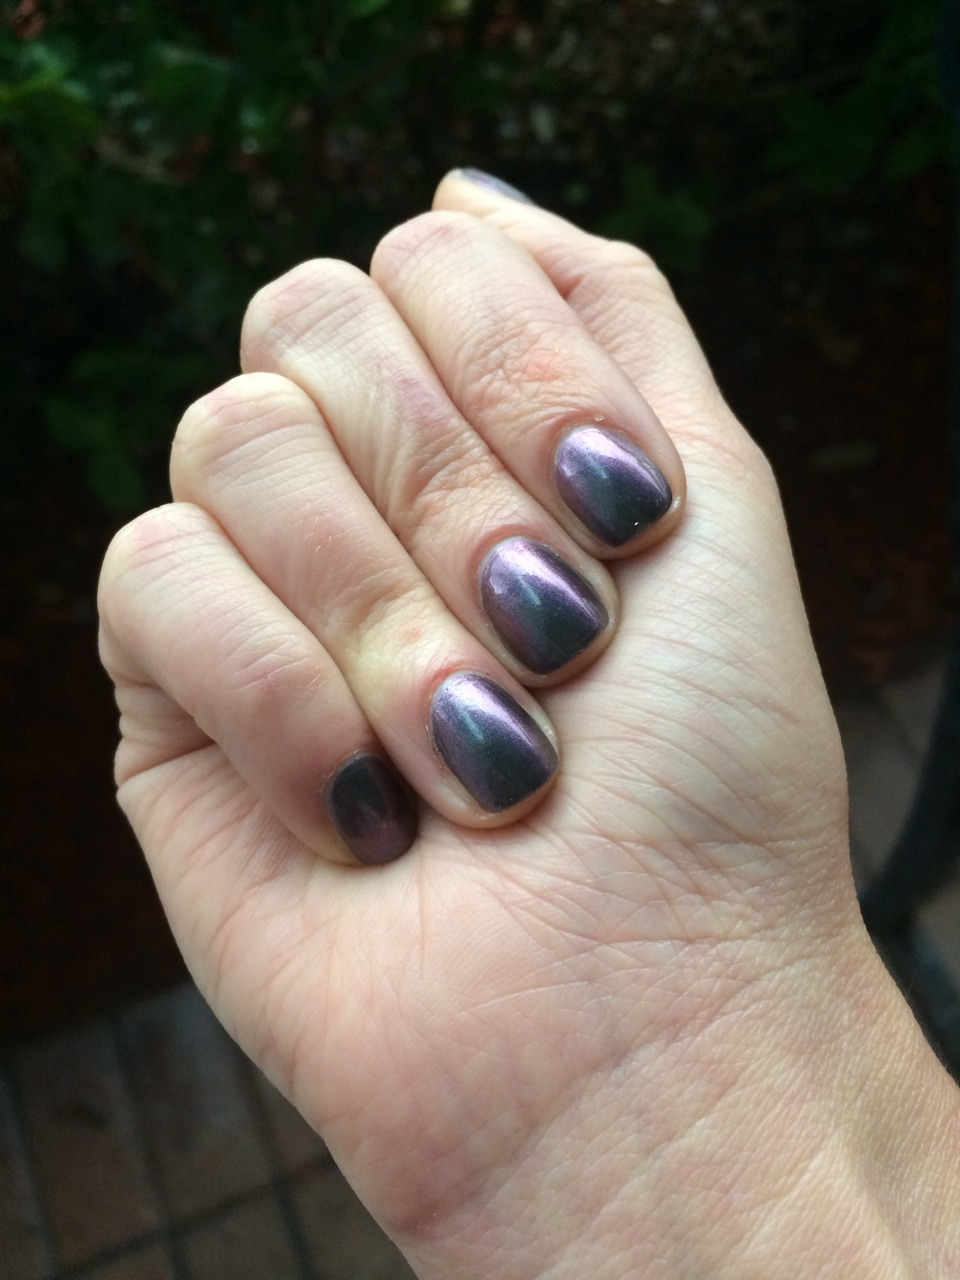 """Square Hue """"Oil Slick"""" from the October 2013 collection."""